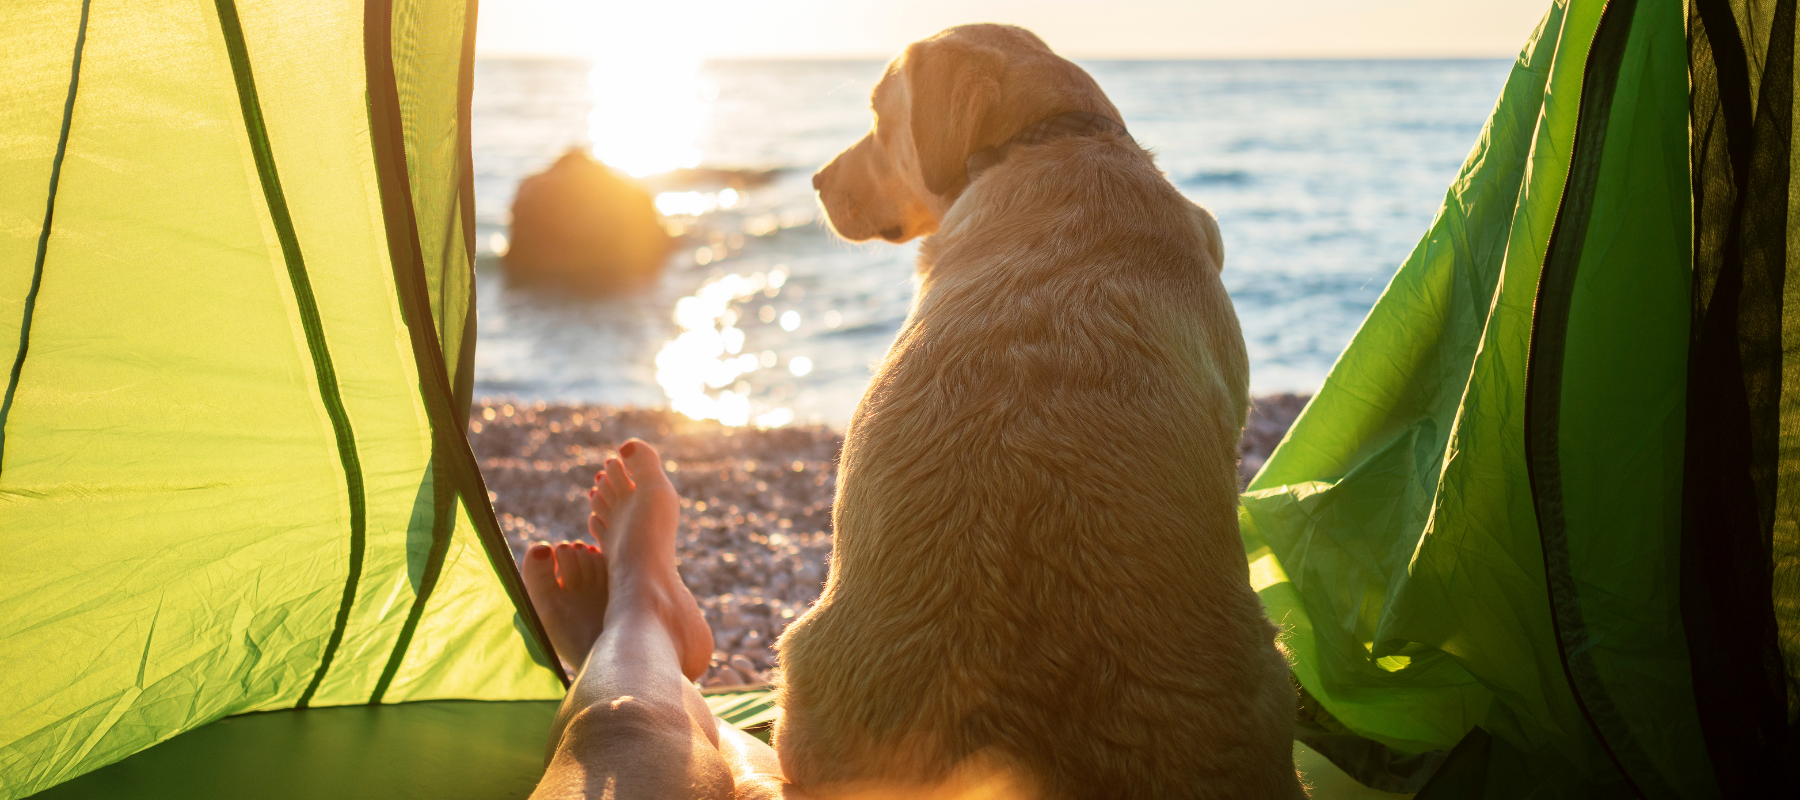 Person and dog sitting in tent looking out at beach